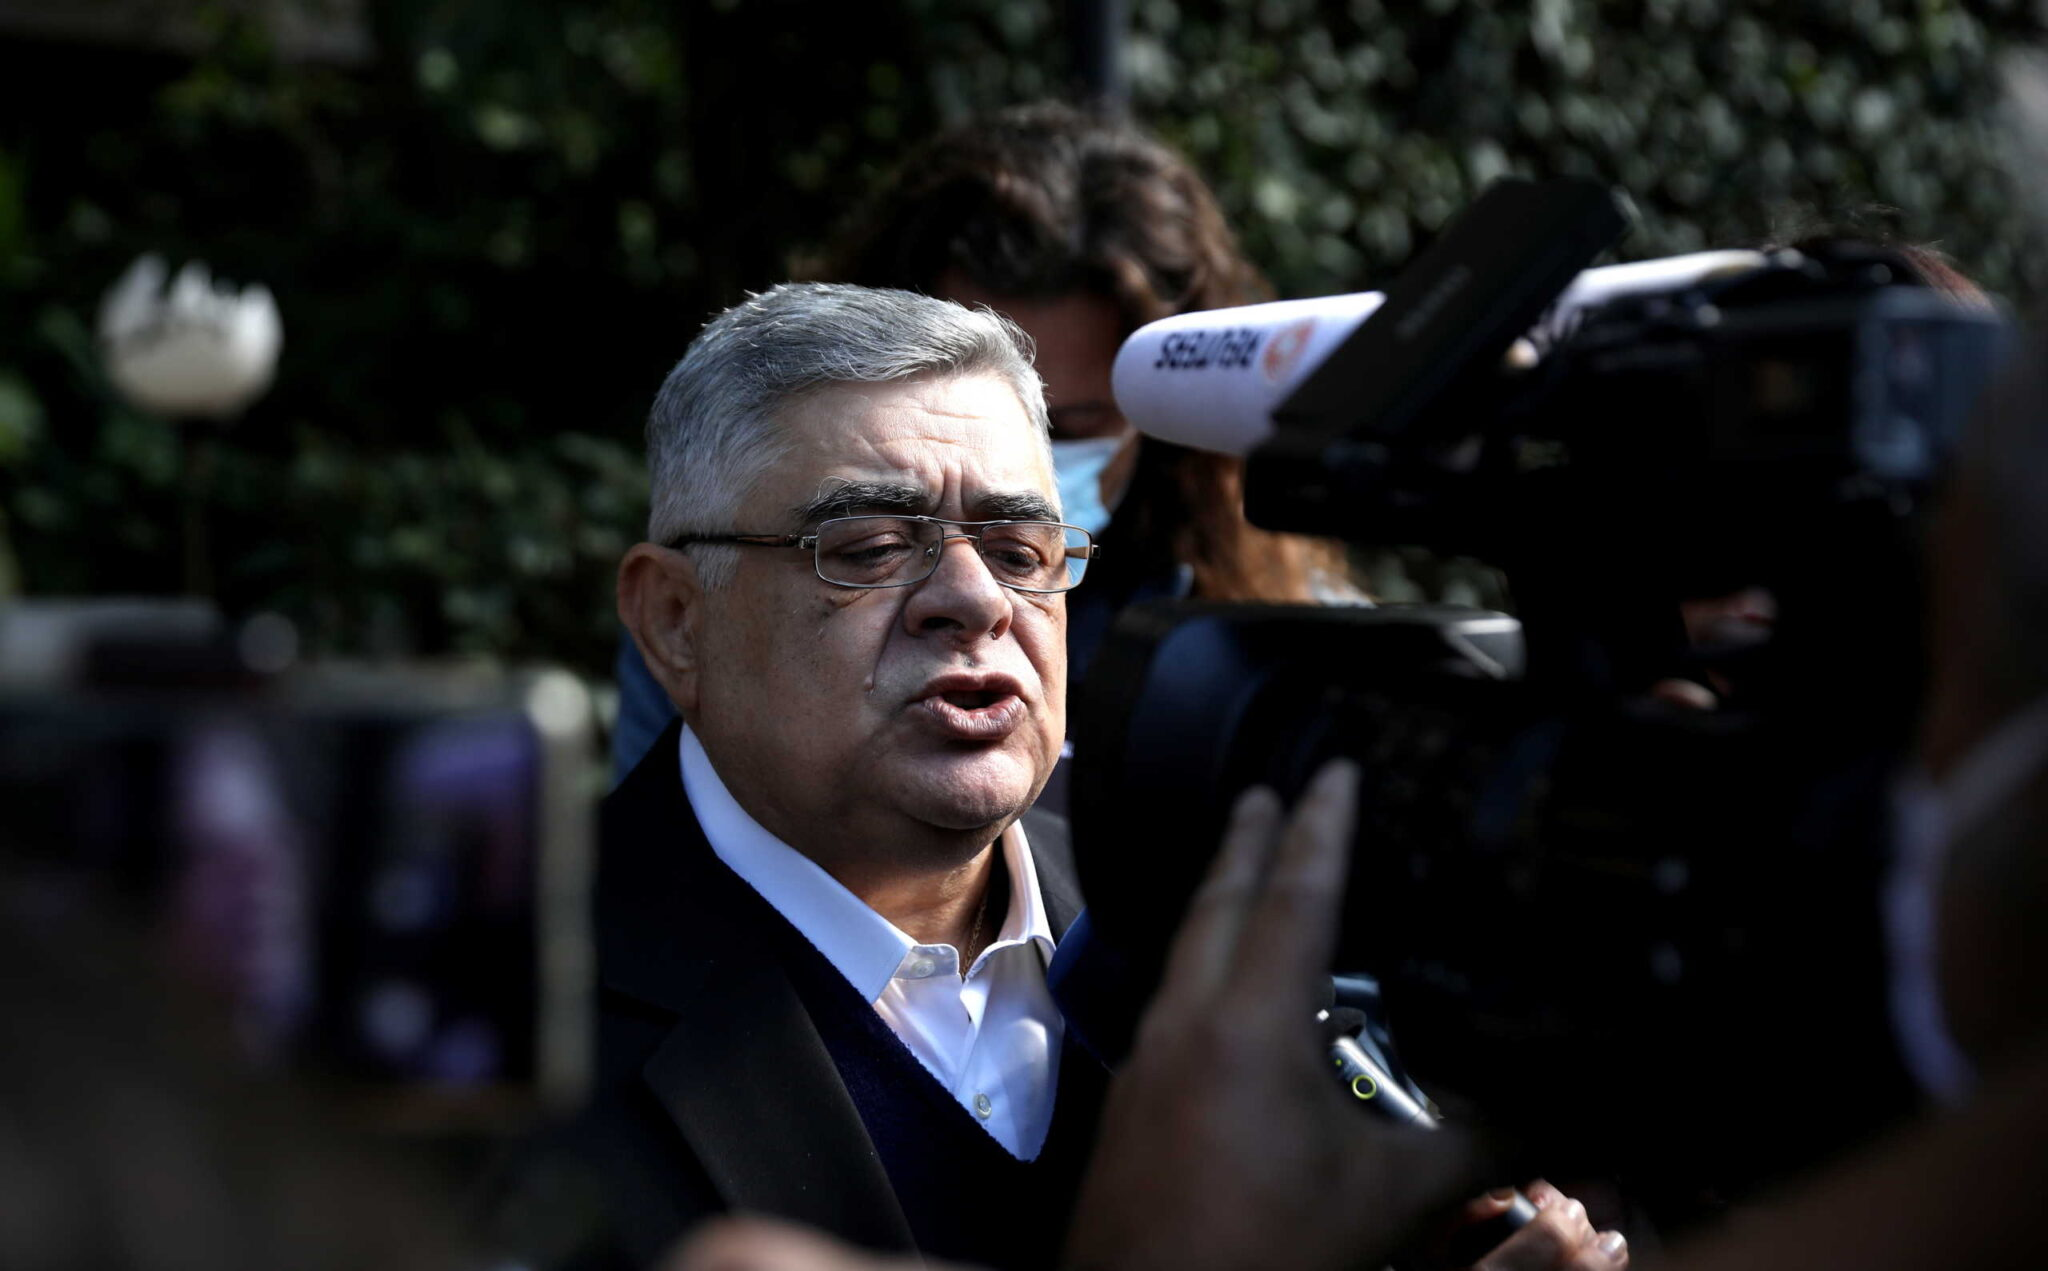 Trial of leaders and members of the golden dawn far right party, in athens